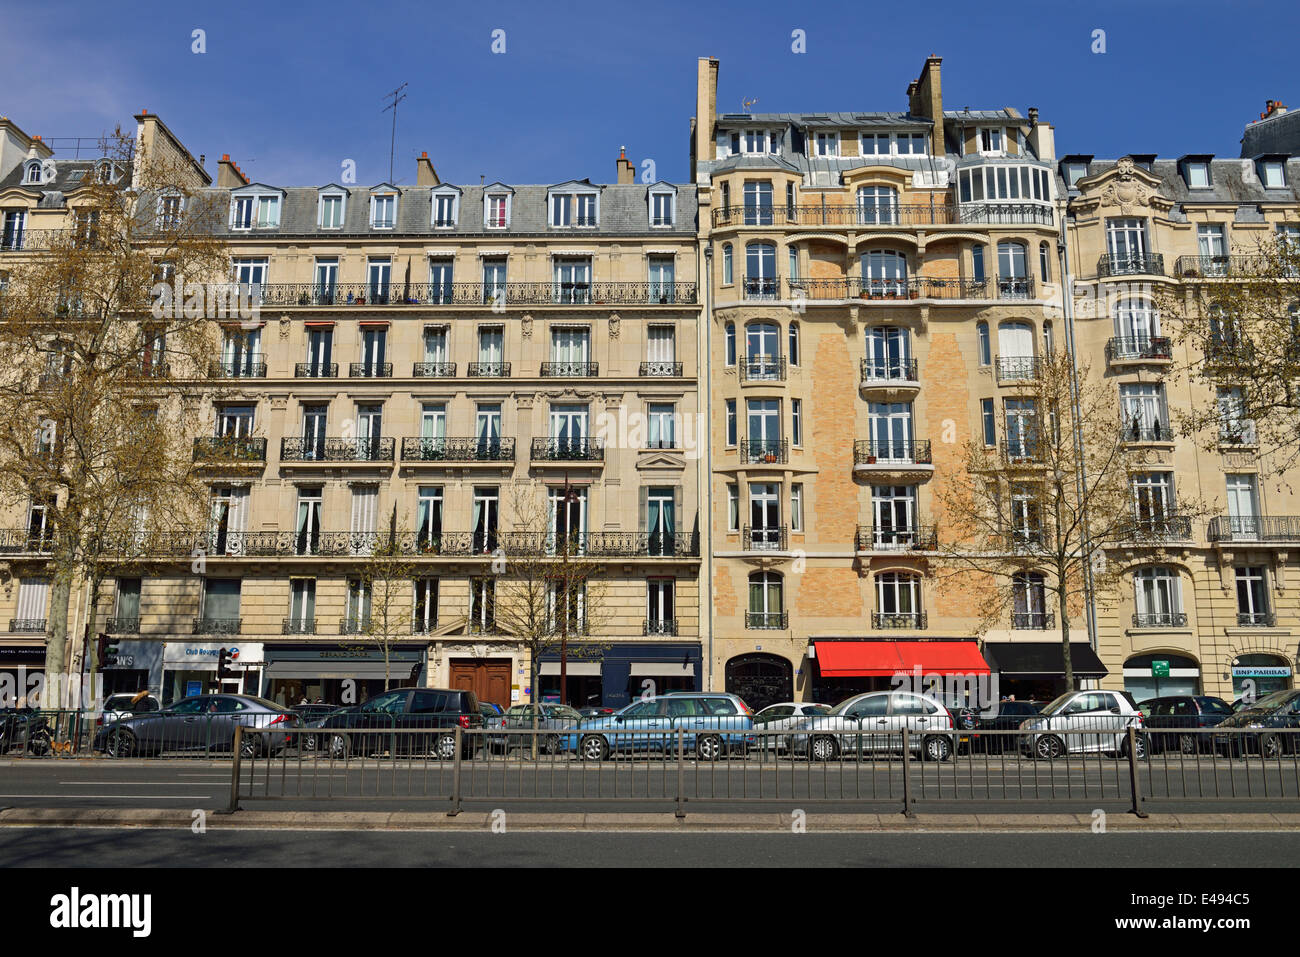 Avenue charles de gaulle neuilly sur seine paris france stock photo royal - Station autolib neuilly sur seine ...